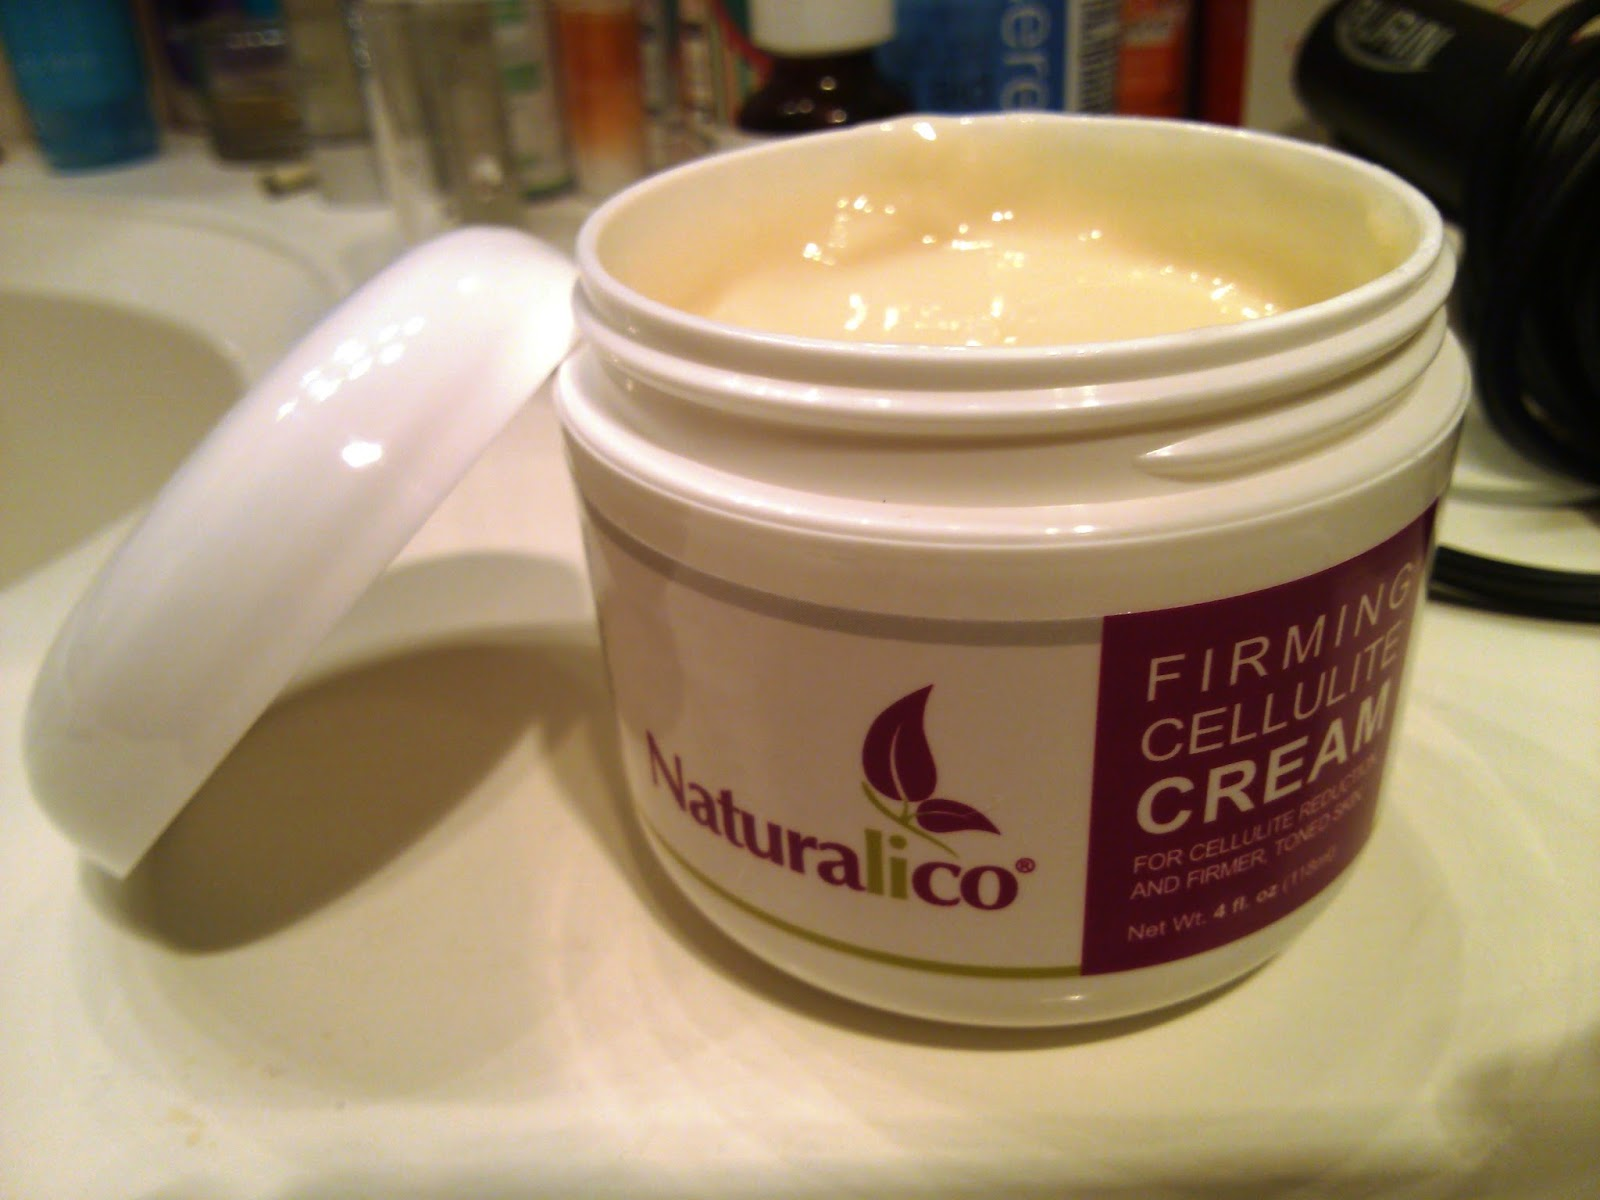 Naturalico Firming Cellulite Cream Review